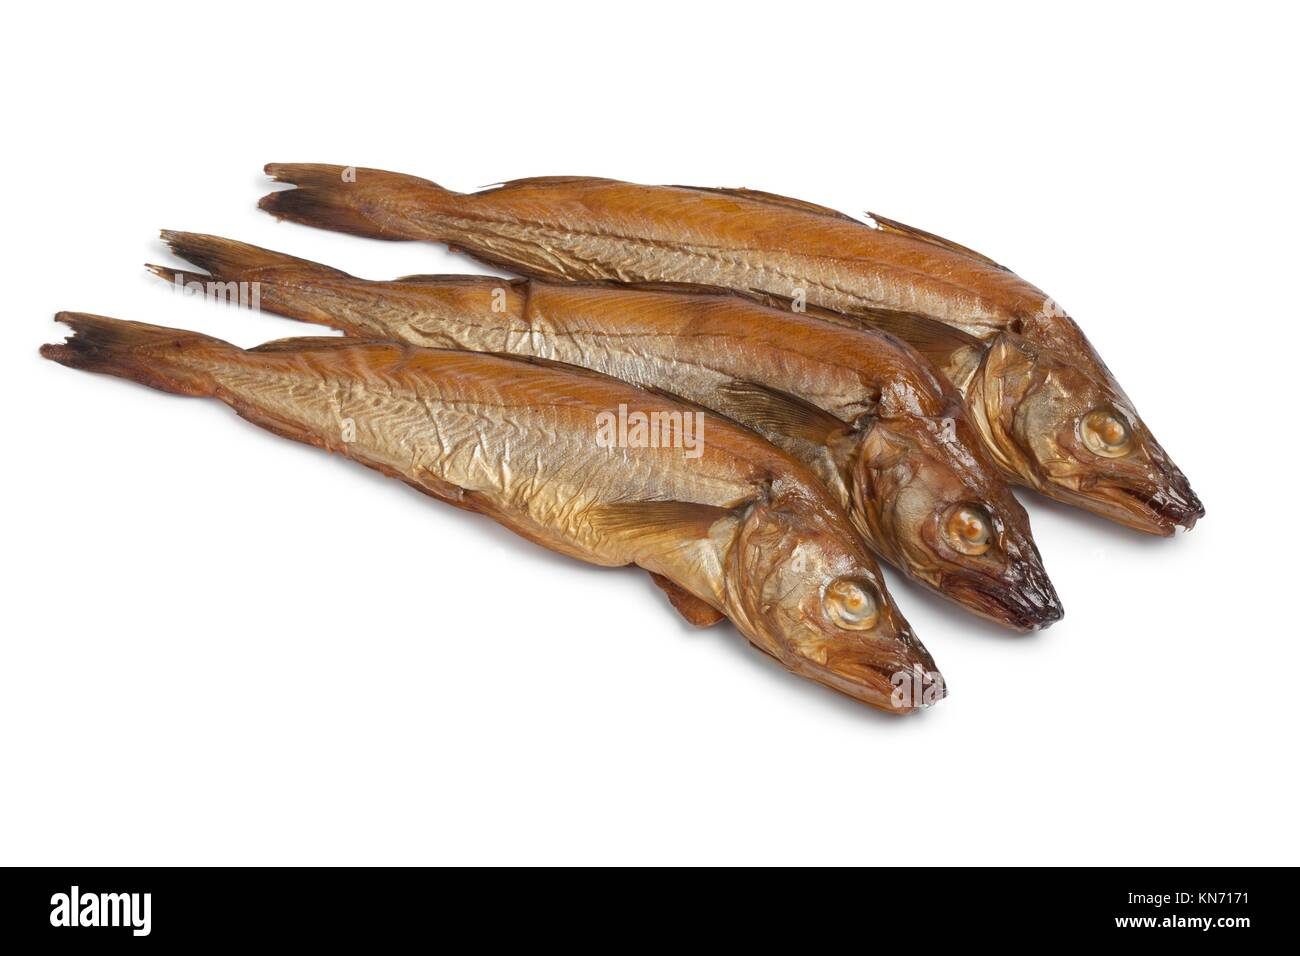 Whiting merlangius merlangius stock photos whiting for Whiting fish picture